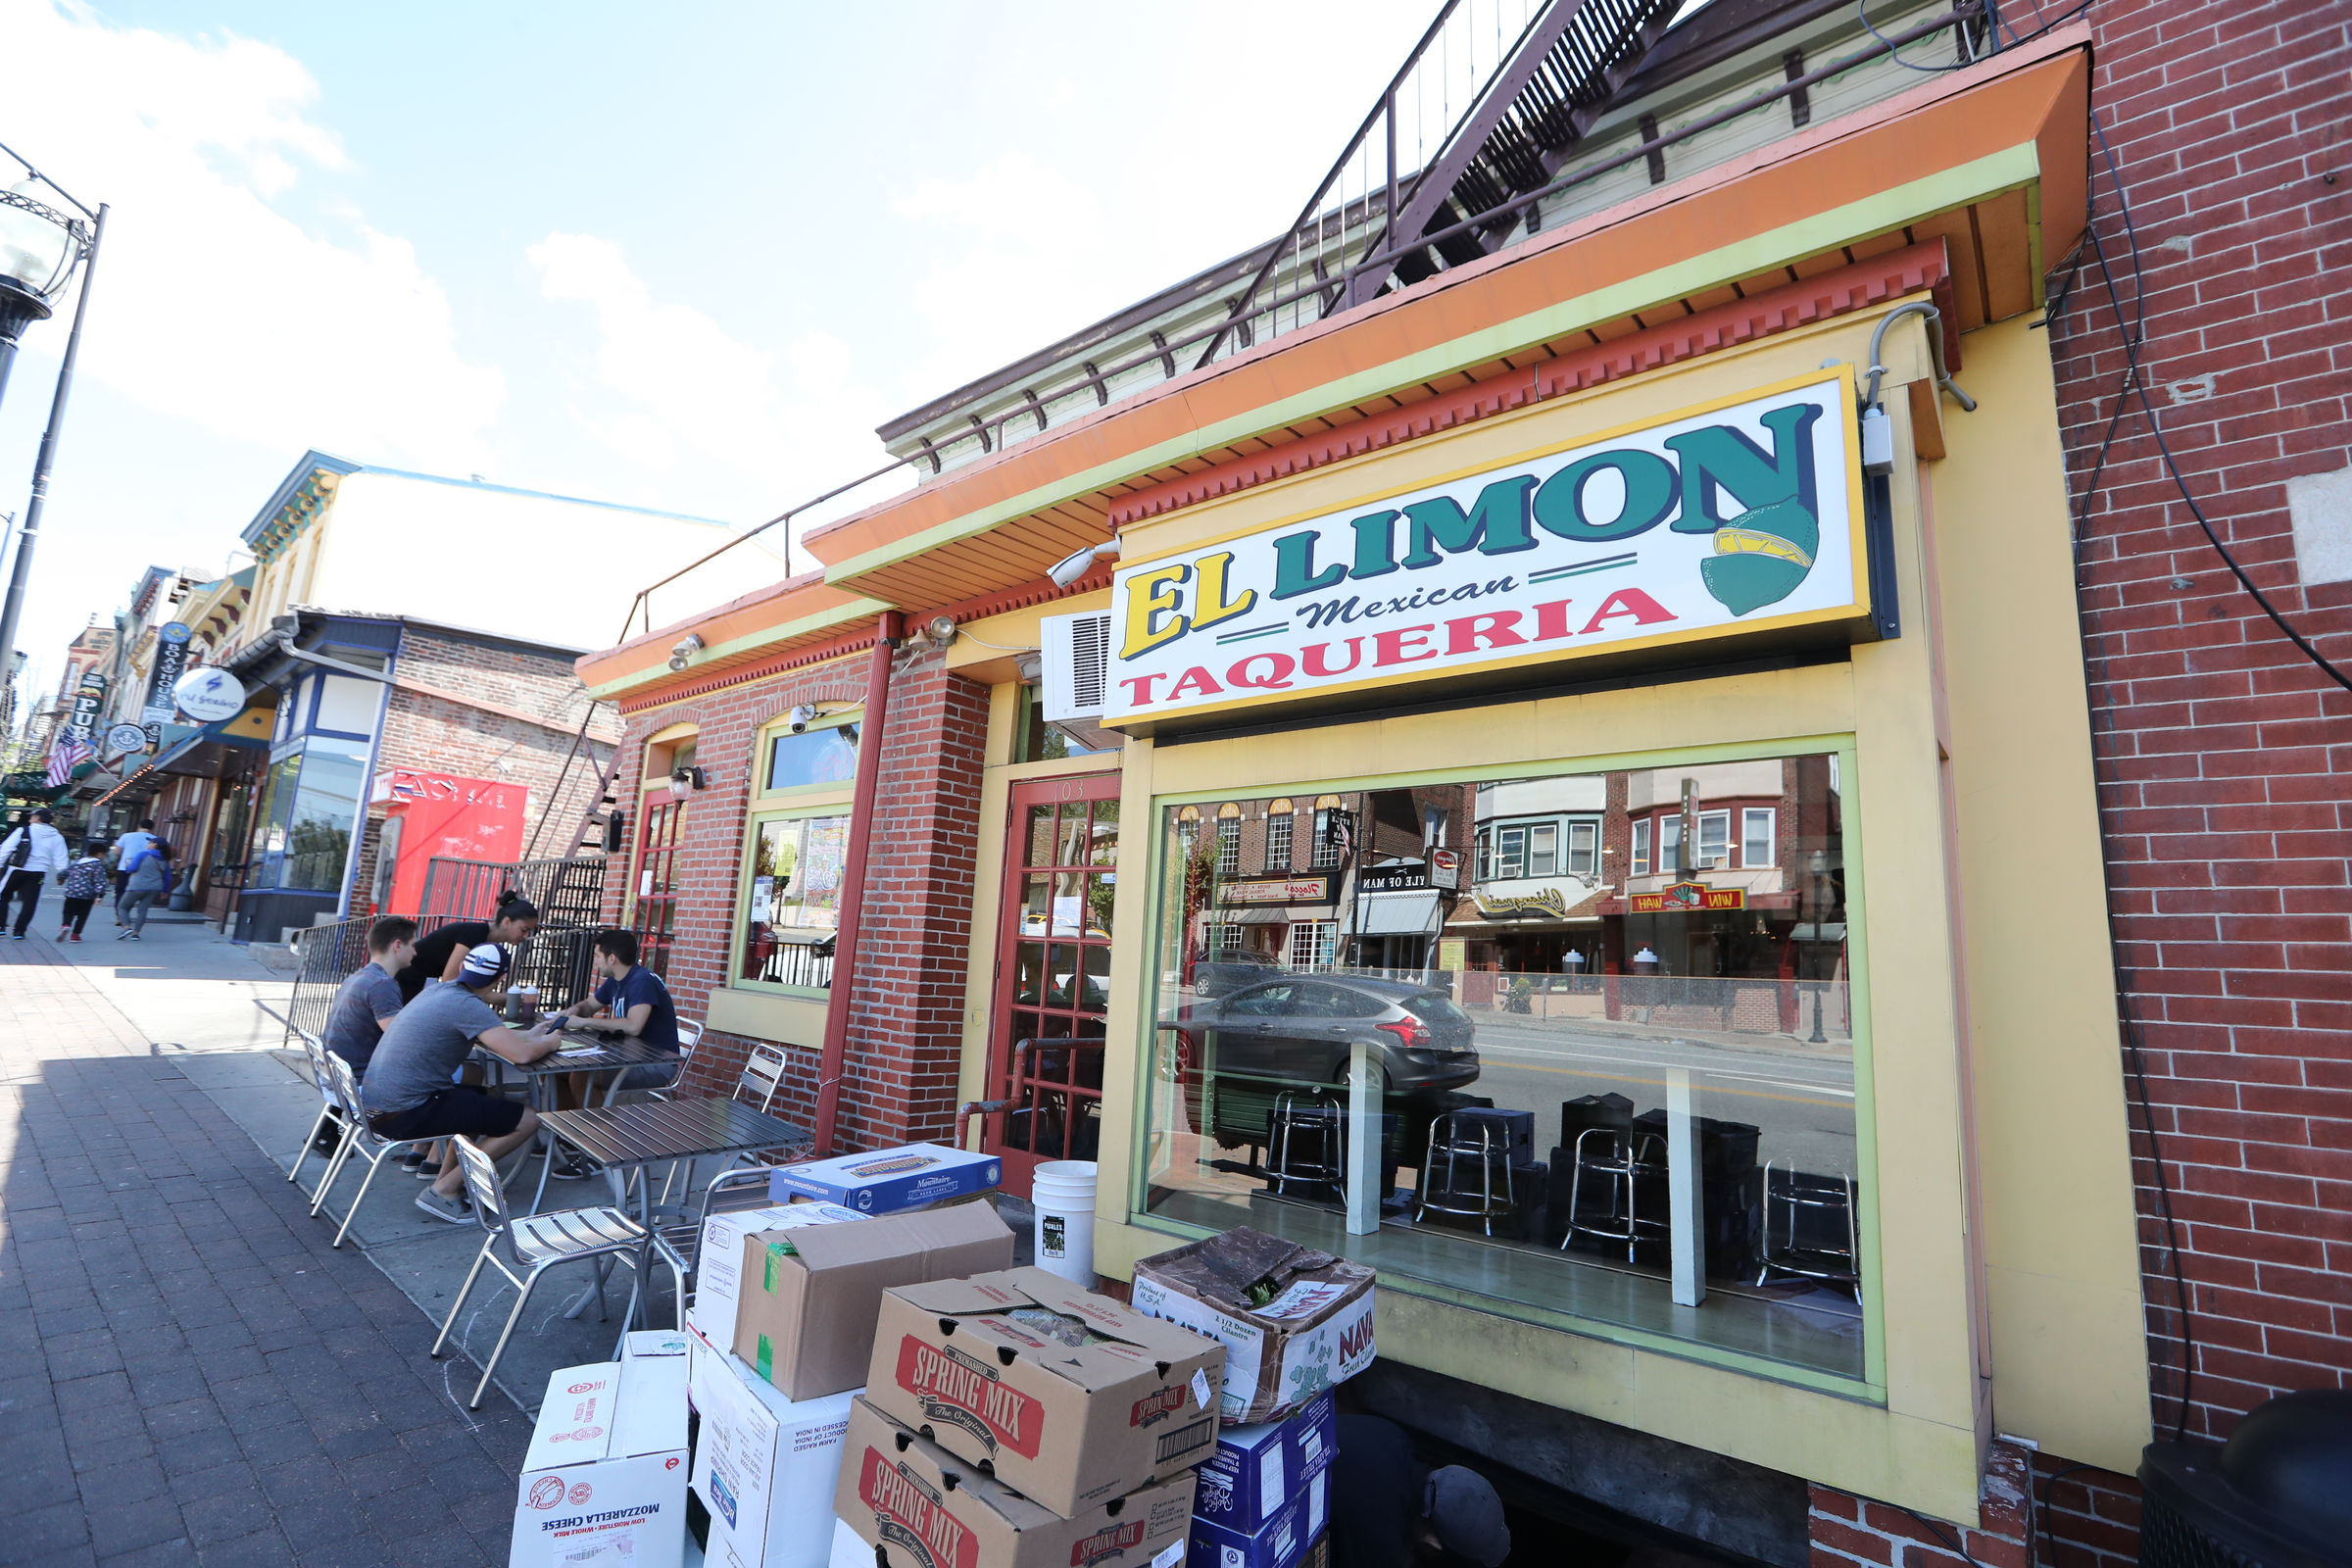 El Limon in Conshohocken